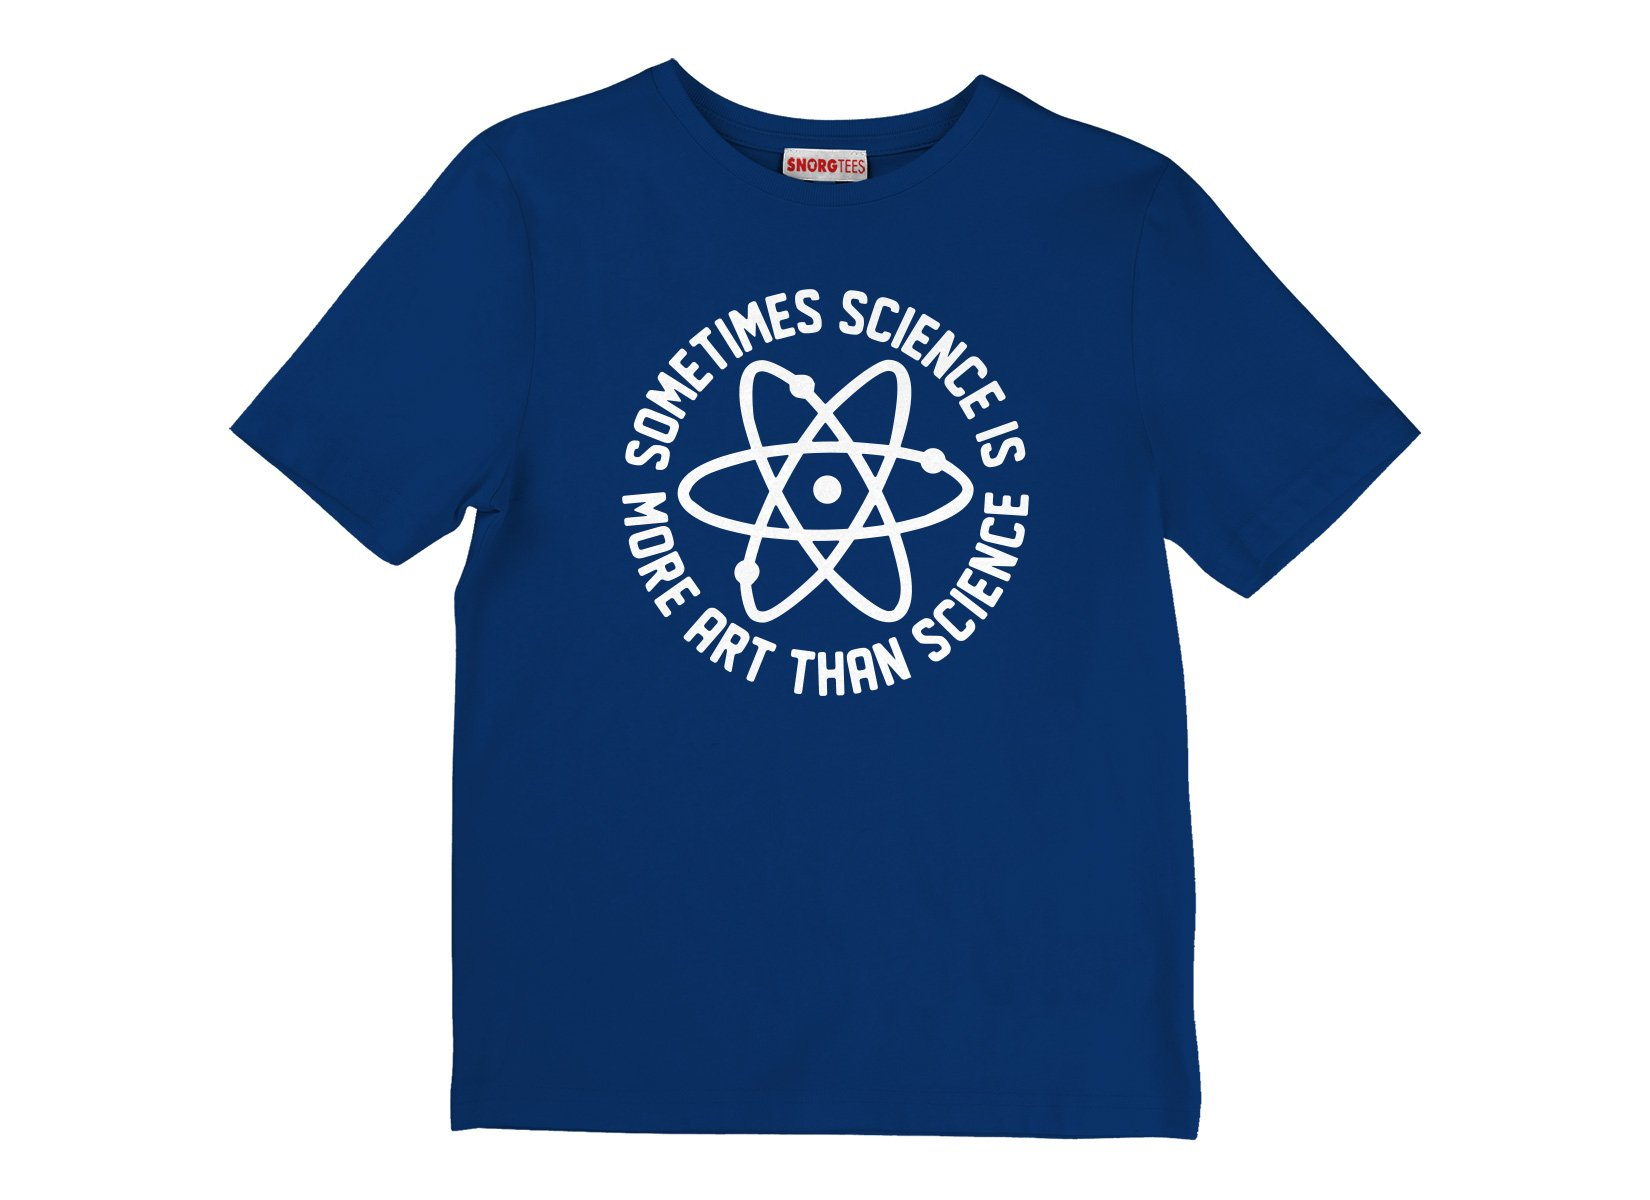 More Art Than Science on Kids T-Shirt